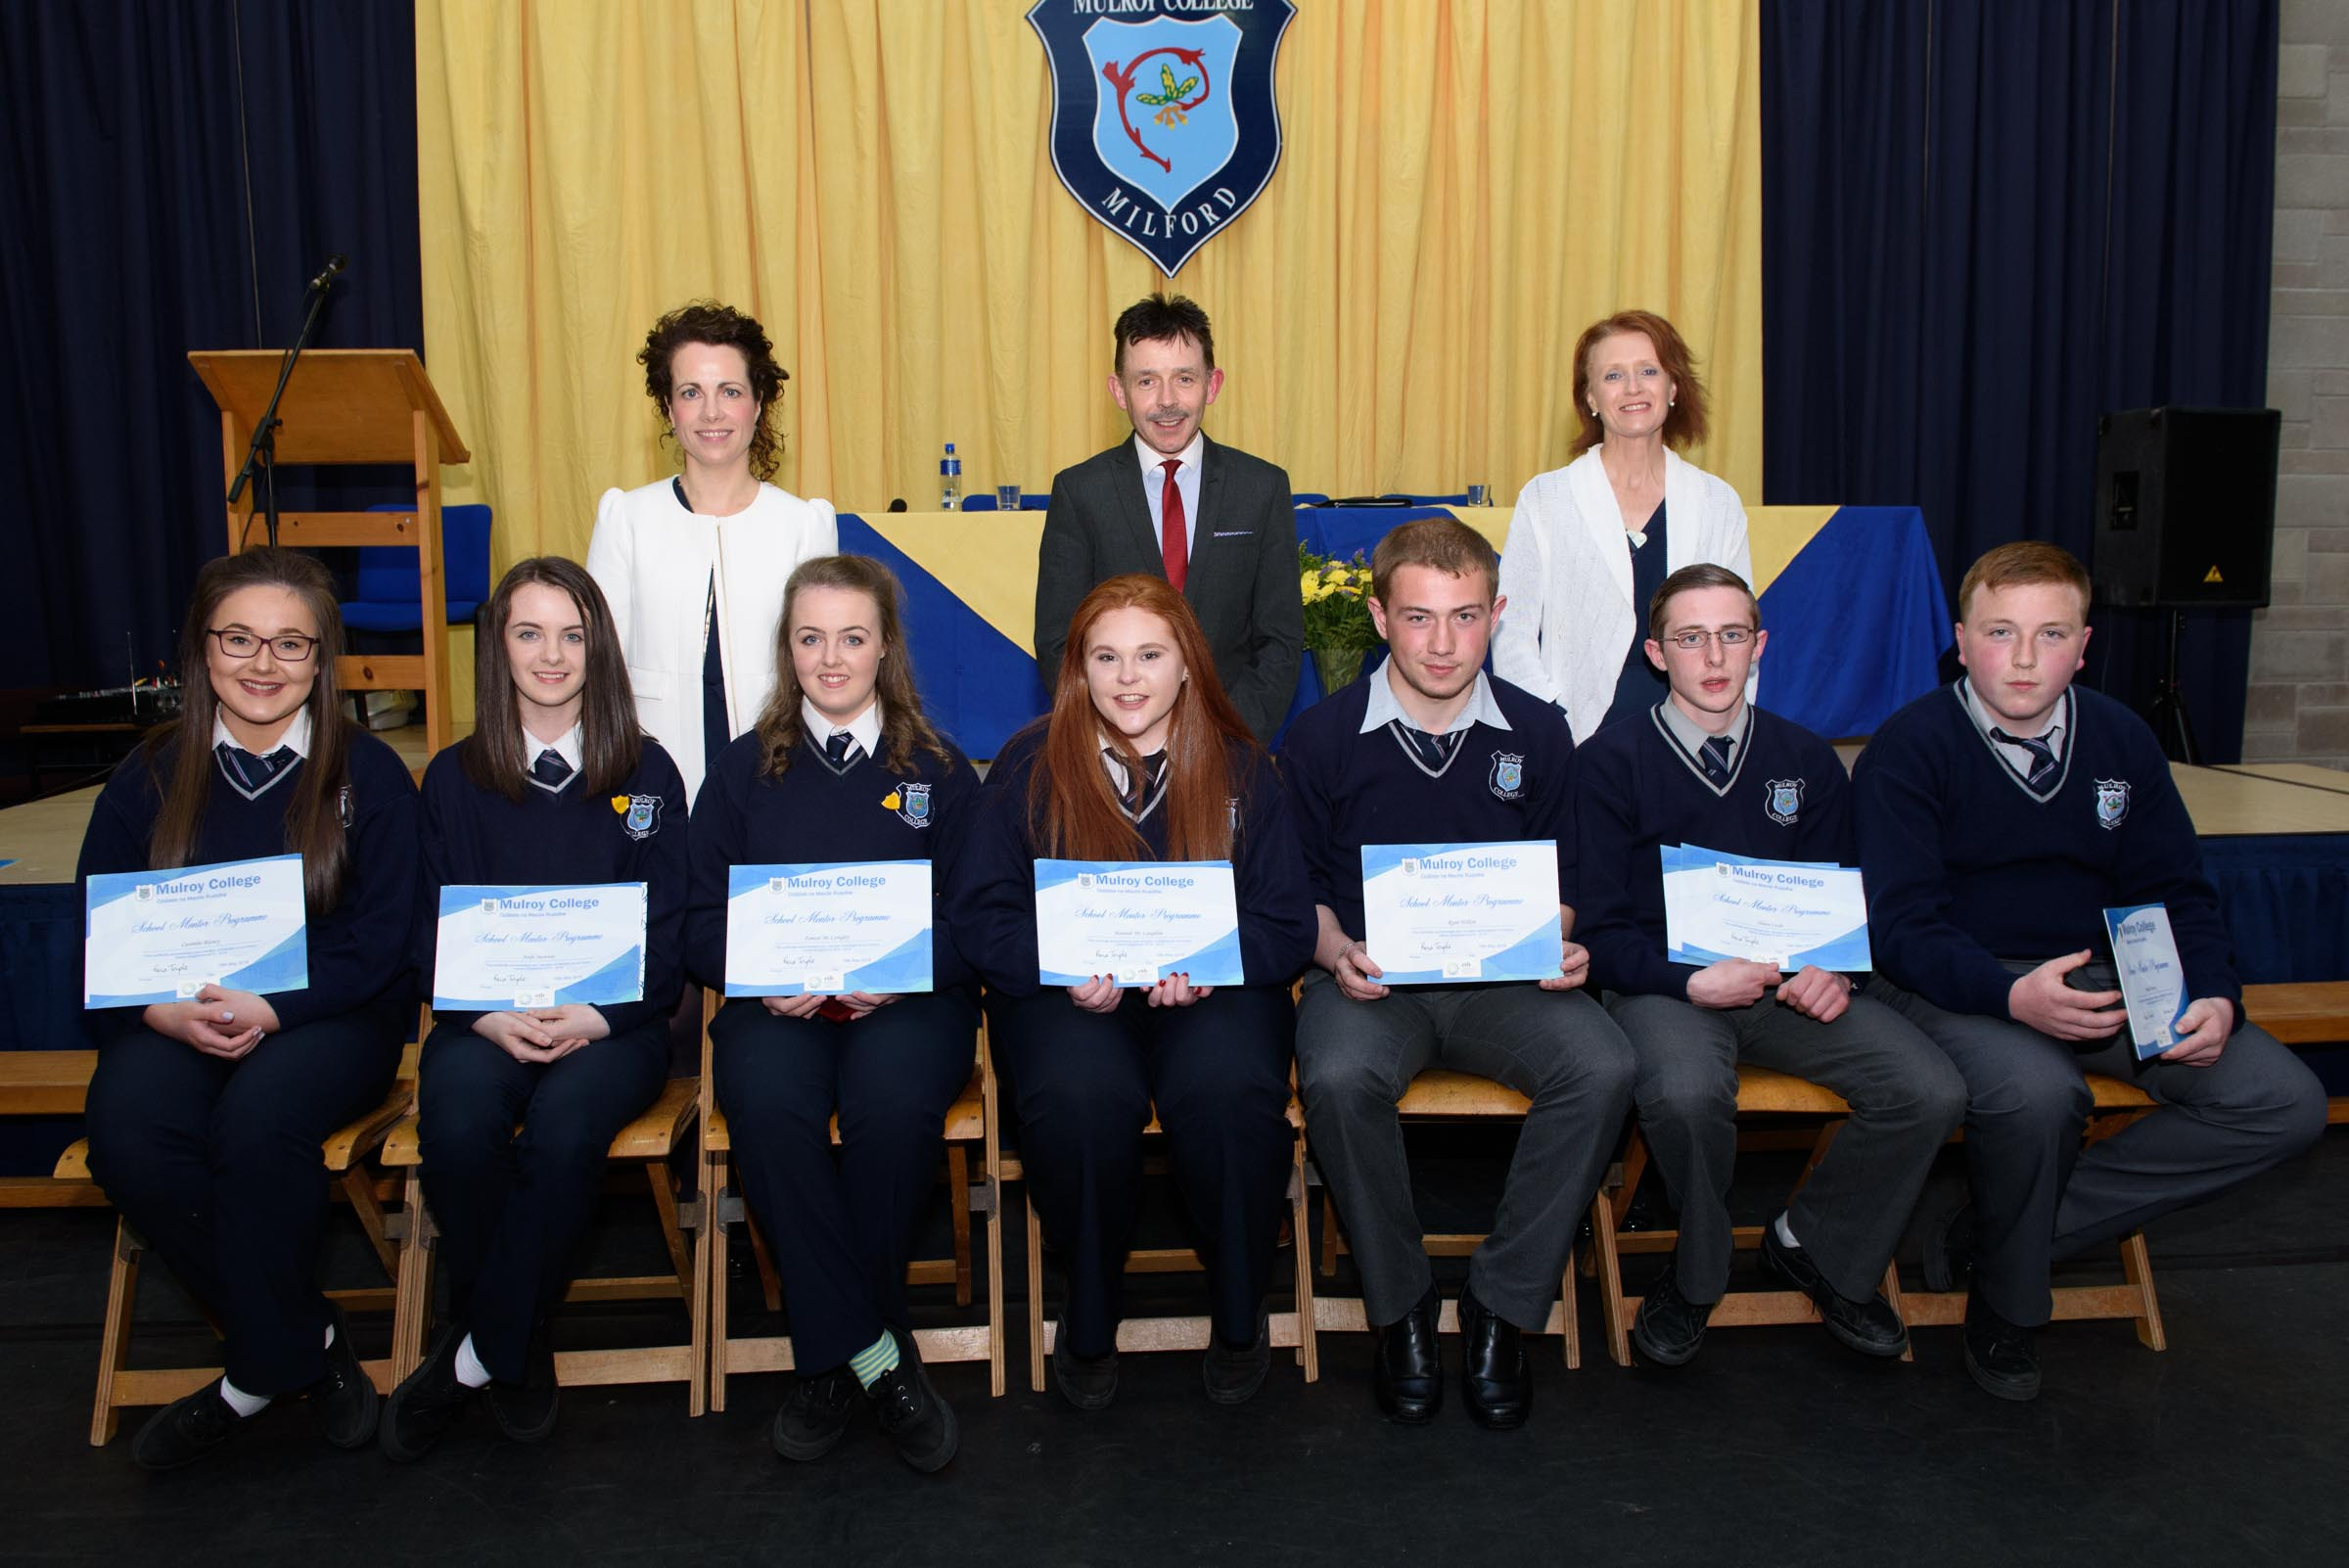 page donegal daily photo clive wasson school mentor programme students at the mulroy college student awards seated from left are caoimhe balney